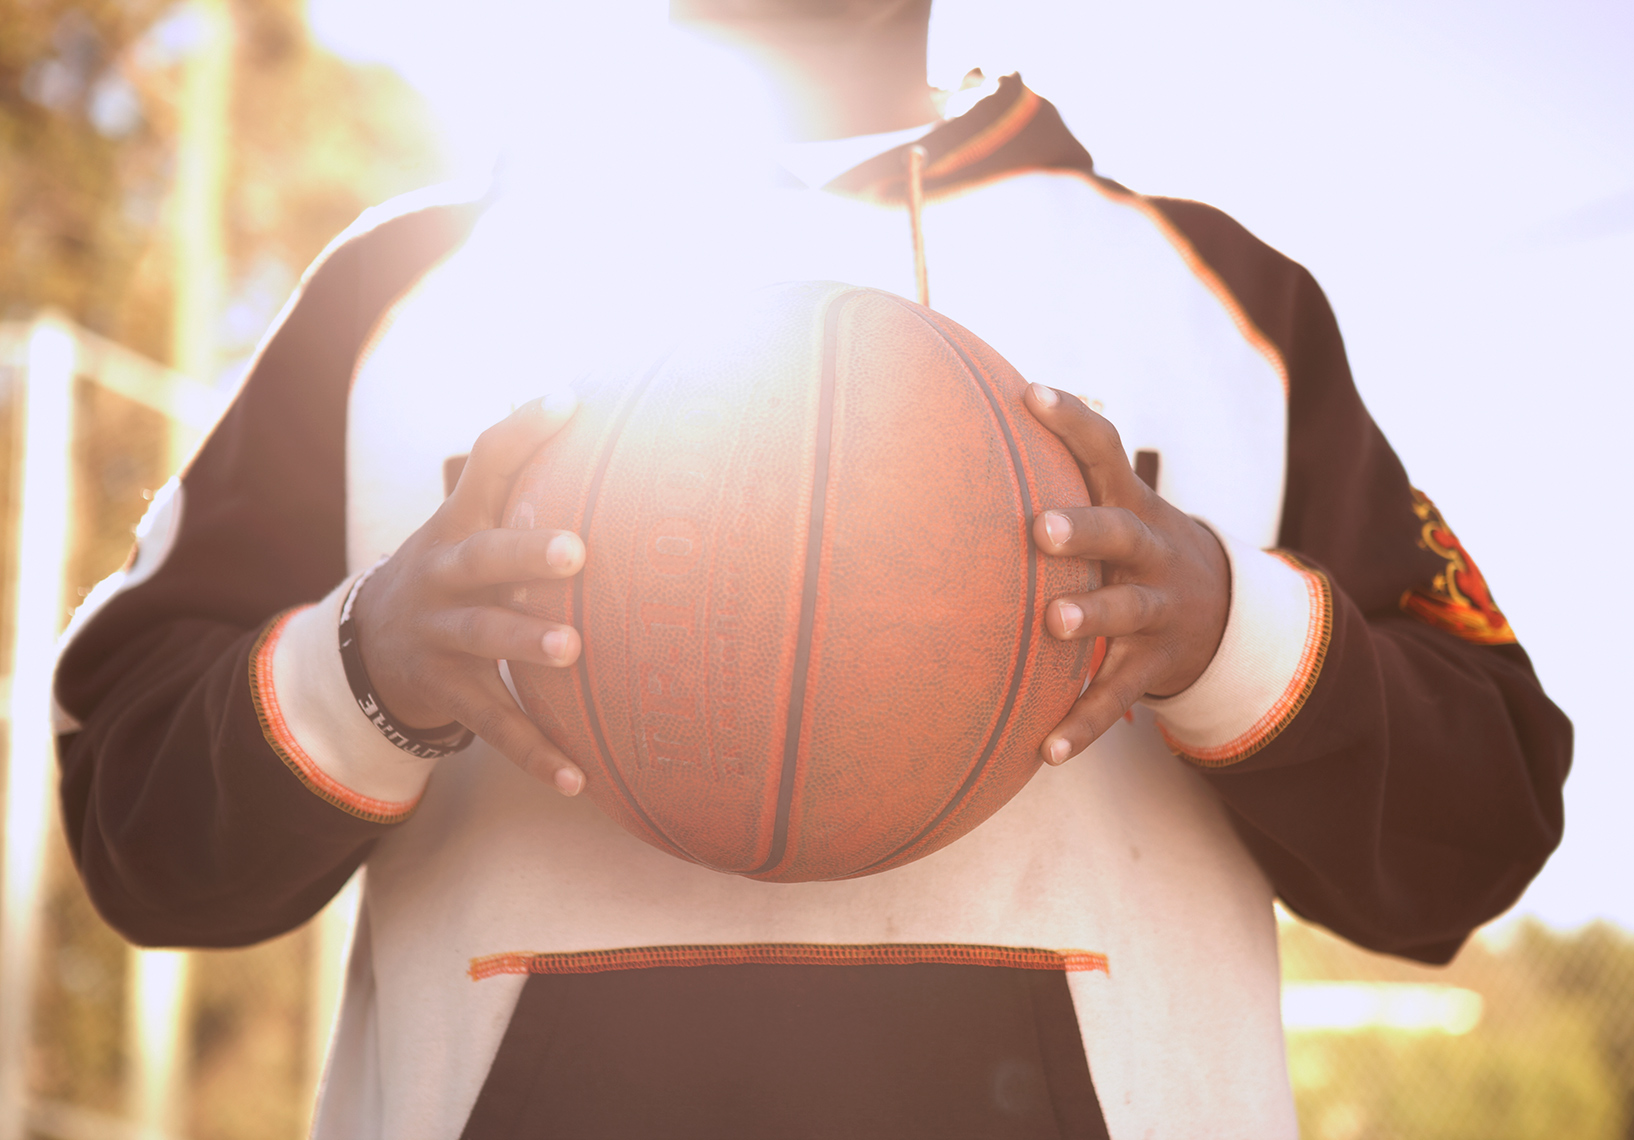 Teenager holding basketball